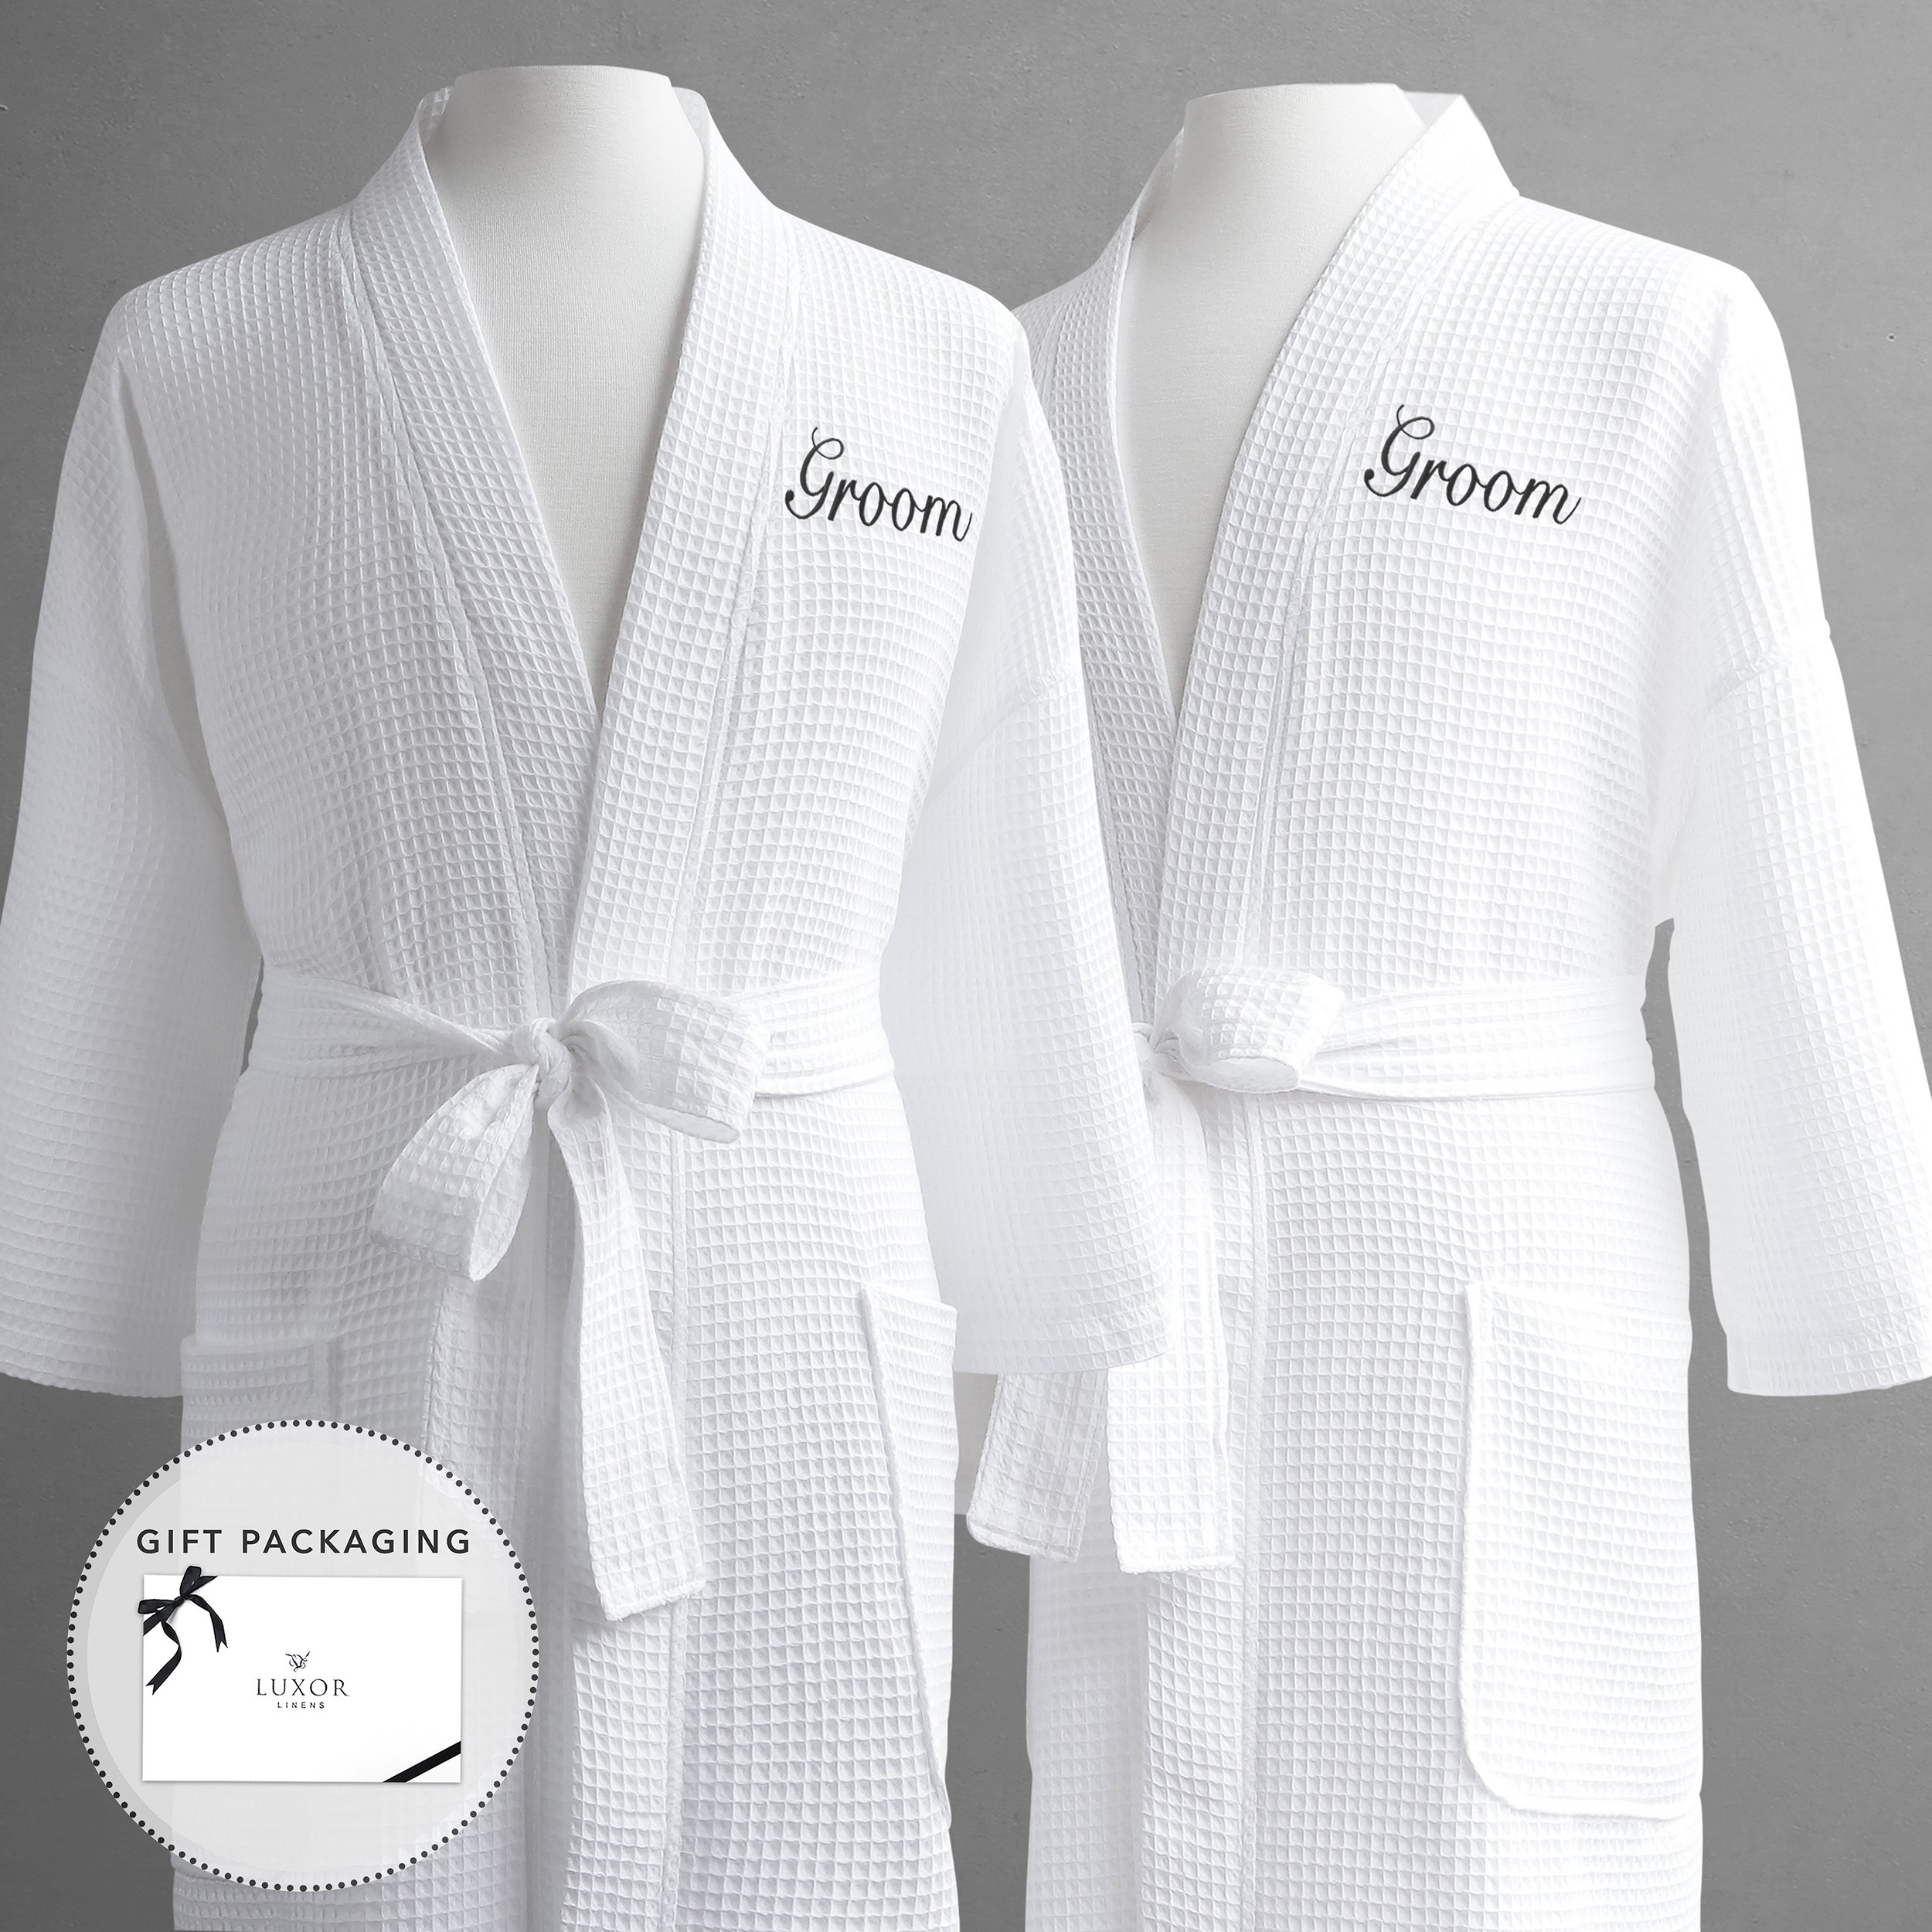 Same-Sex Couple's Waffle Weave Bathrobe Set-100% Egyptian Cotton-Unisex/One Size Fits Most-Spa Robe, Luxurious, Soft, Plush, Elegant Script Embroidery-Luxor Linens-Groom/Groom with Gift Packaging